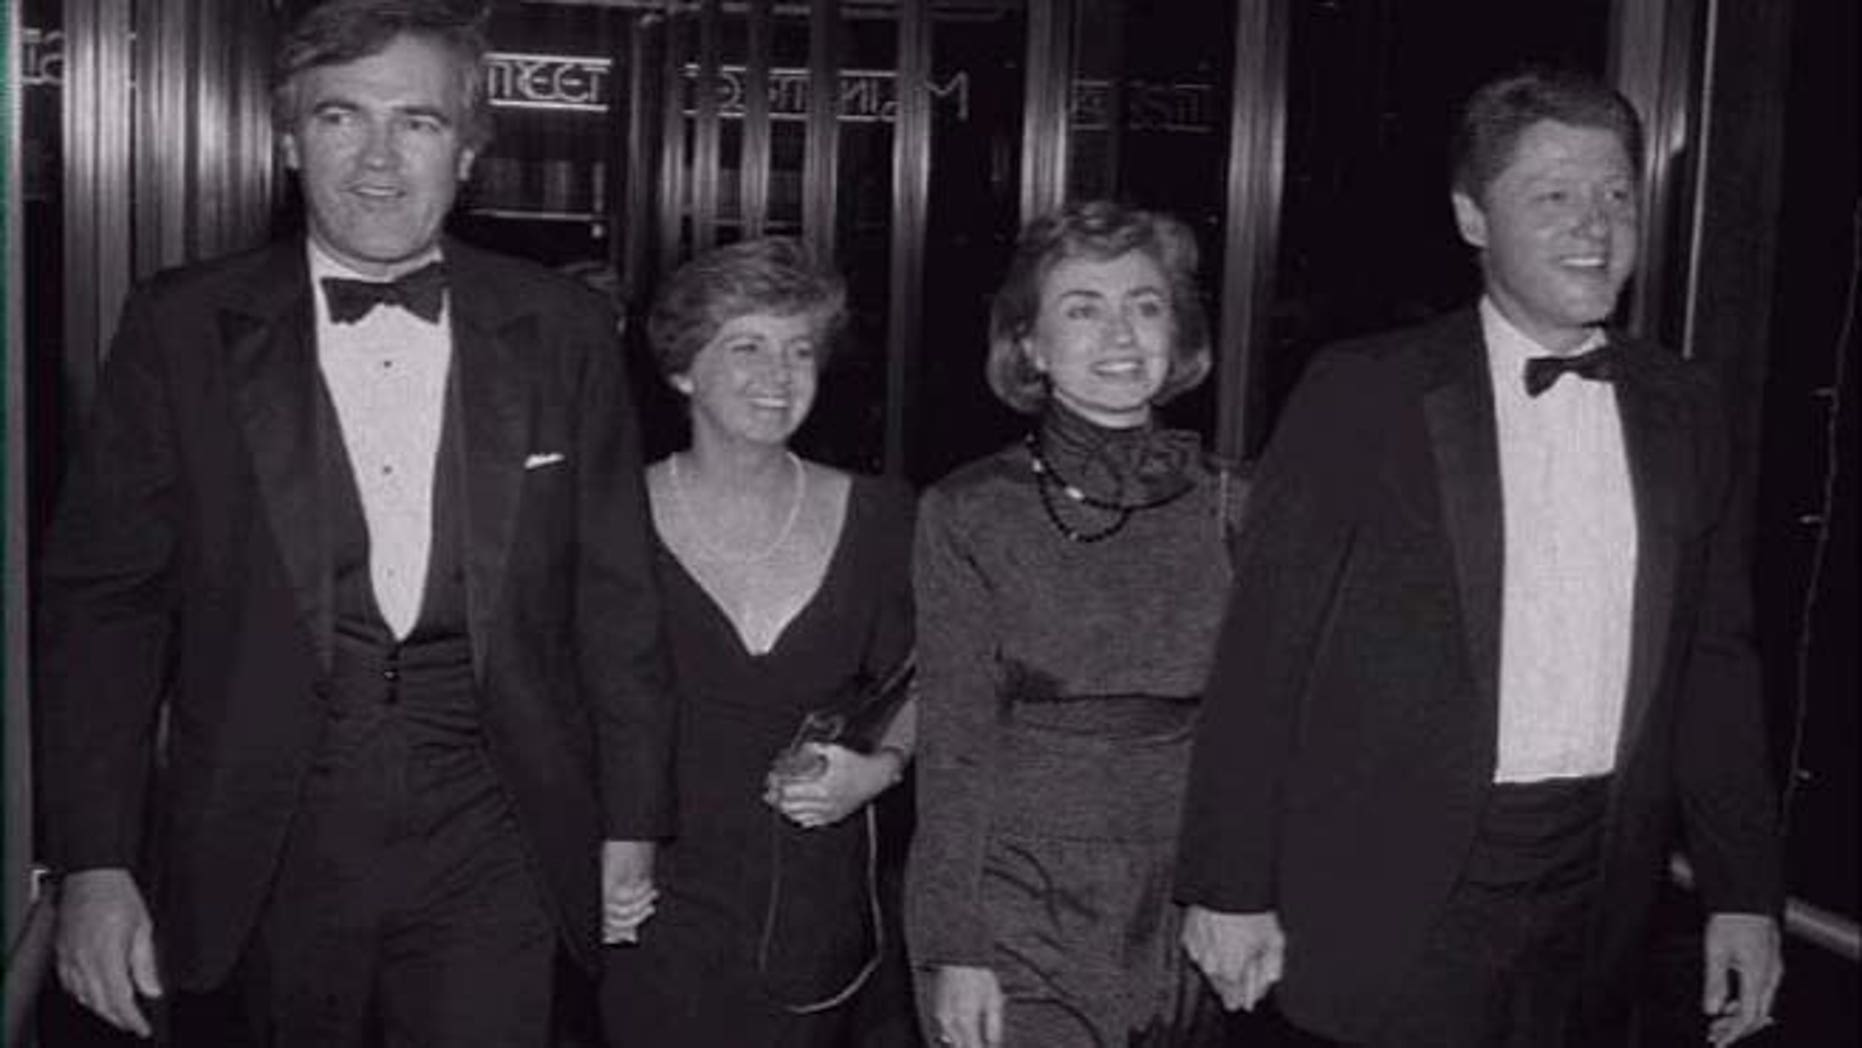 This 1988 file photo shows Vincent Foster, Lisa Foster, Hillary Clinton and then-Gov. Bill Clinton at a Little Rock theater opening.